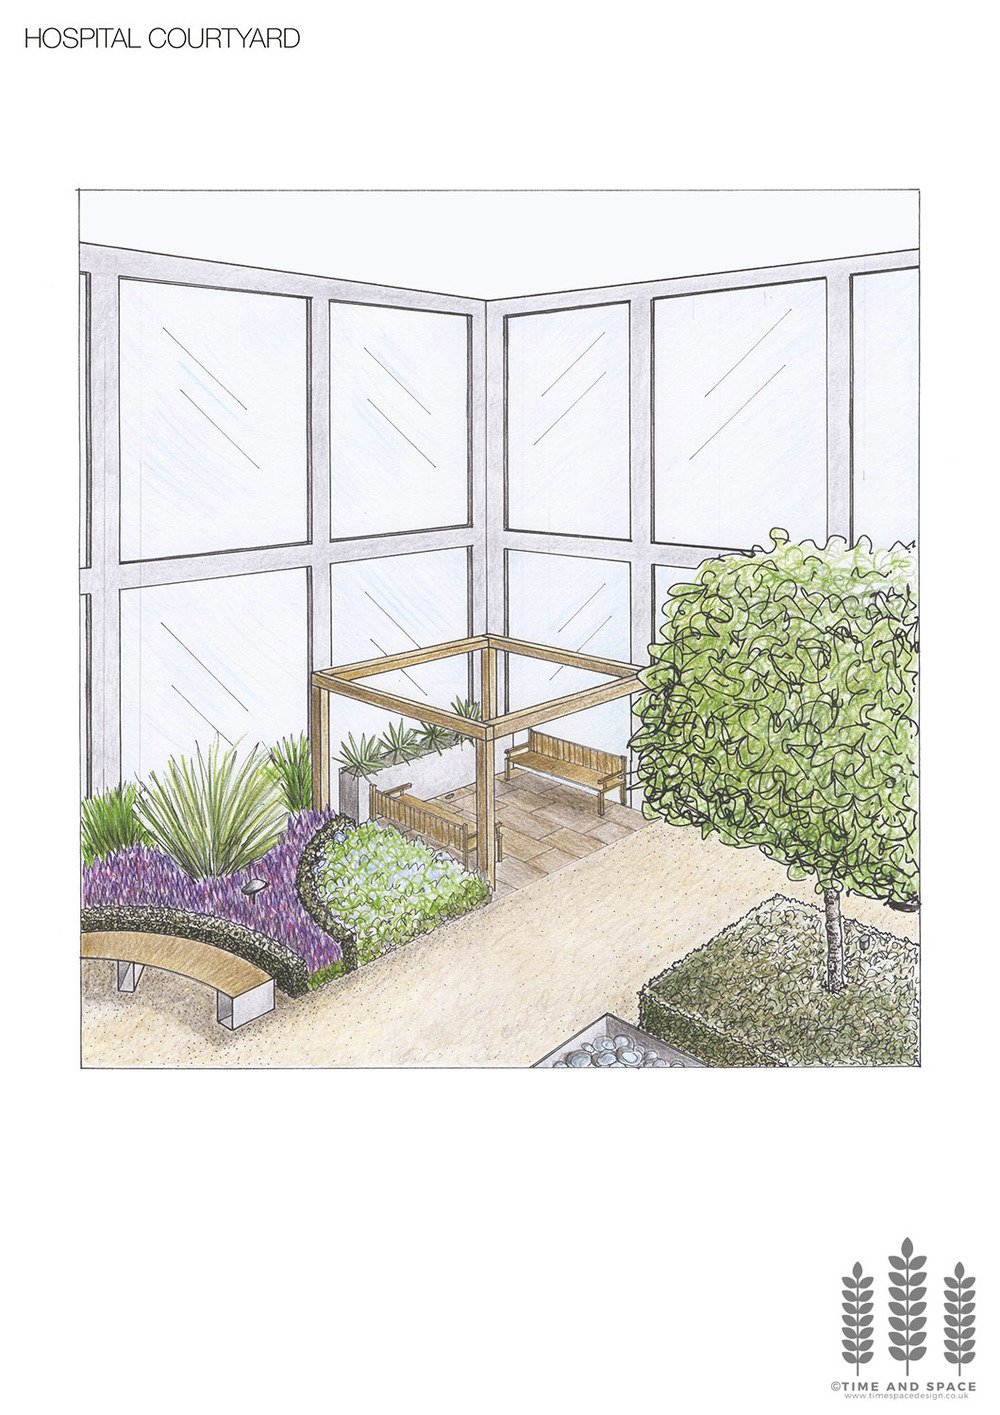 Hospital courtyard perspective drawing